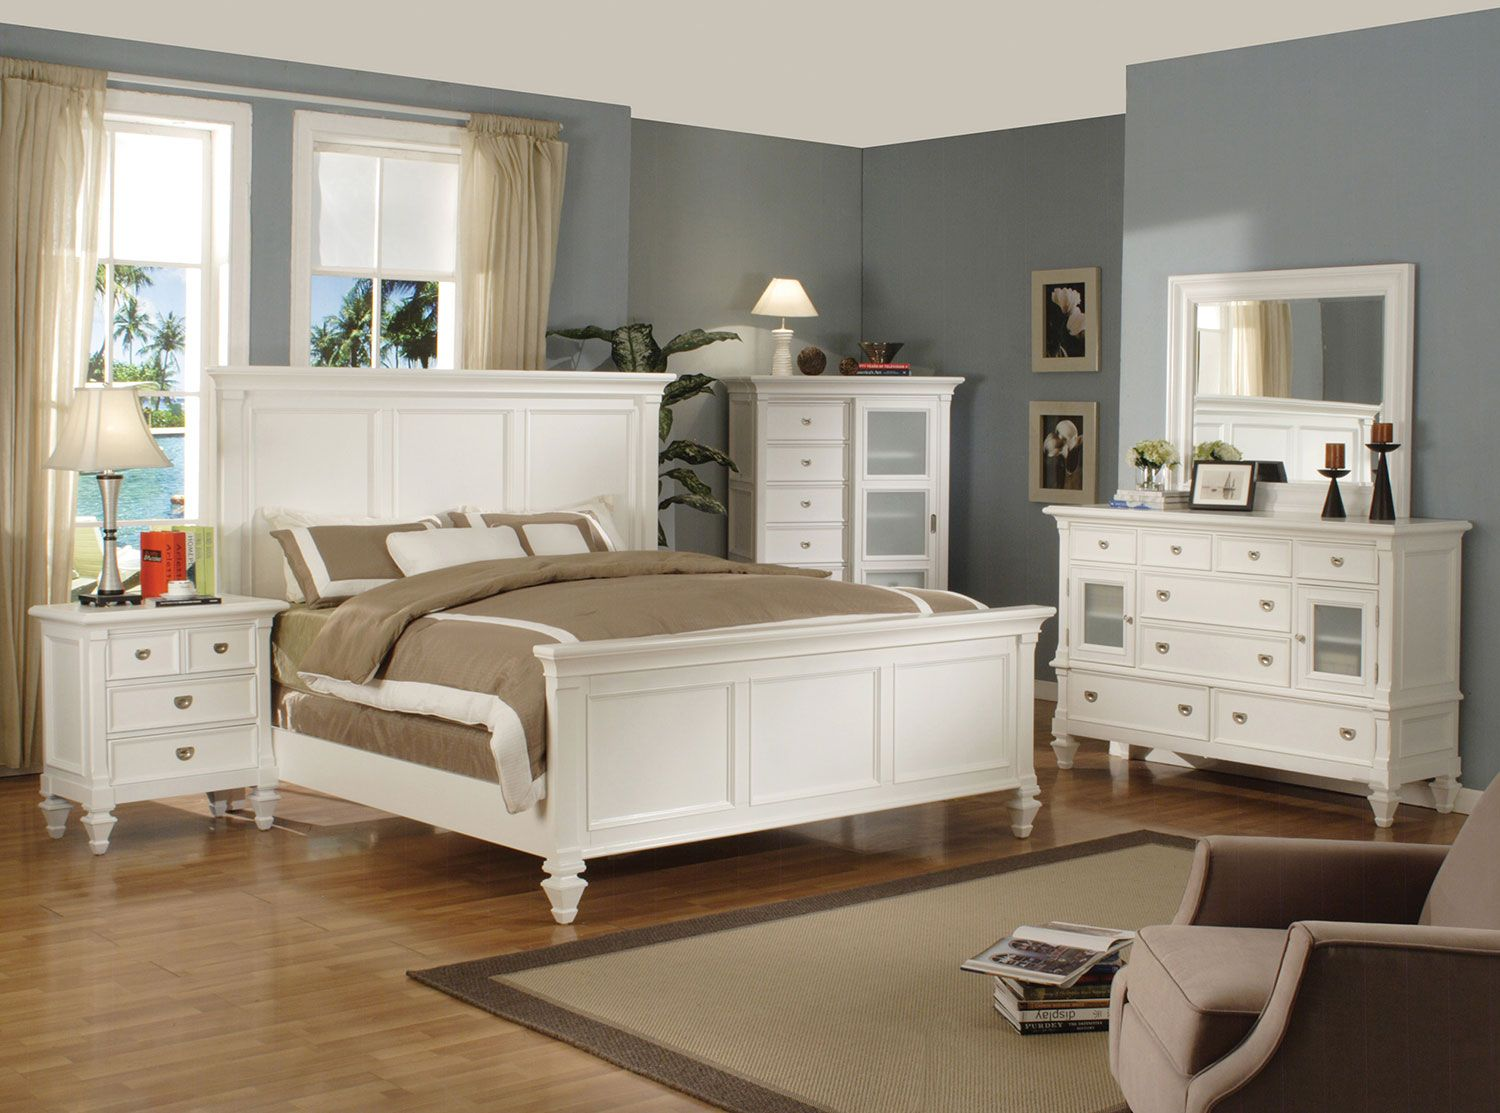 With Just The Right Amount Of Frills The Elegant Shannon King Bedroom Collection Adds Graceful Charm To White Paneling White Bedroom Set White Furniture Sets